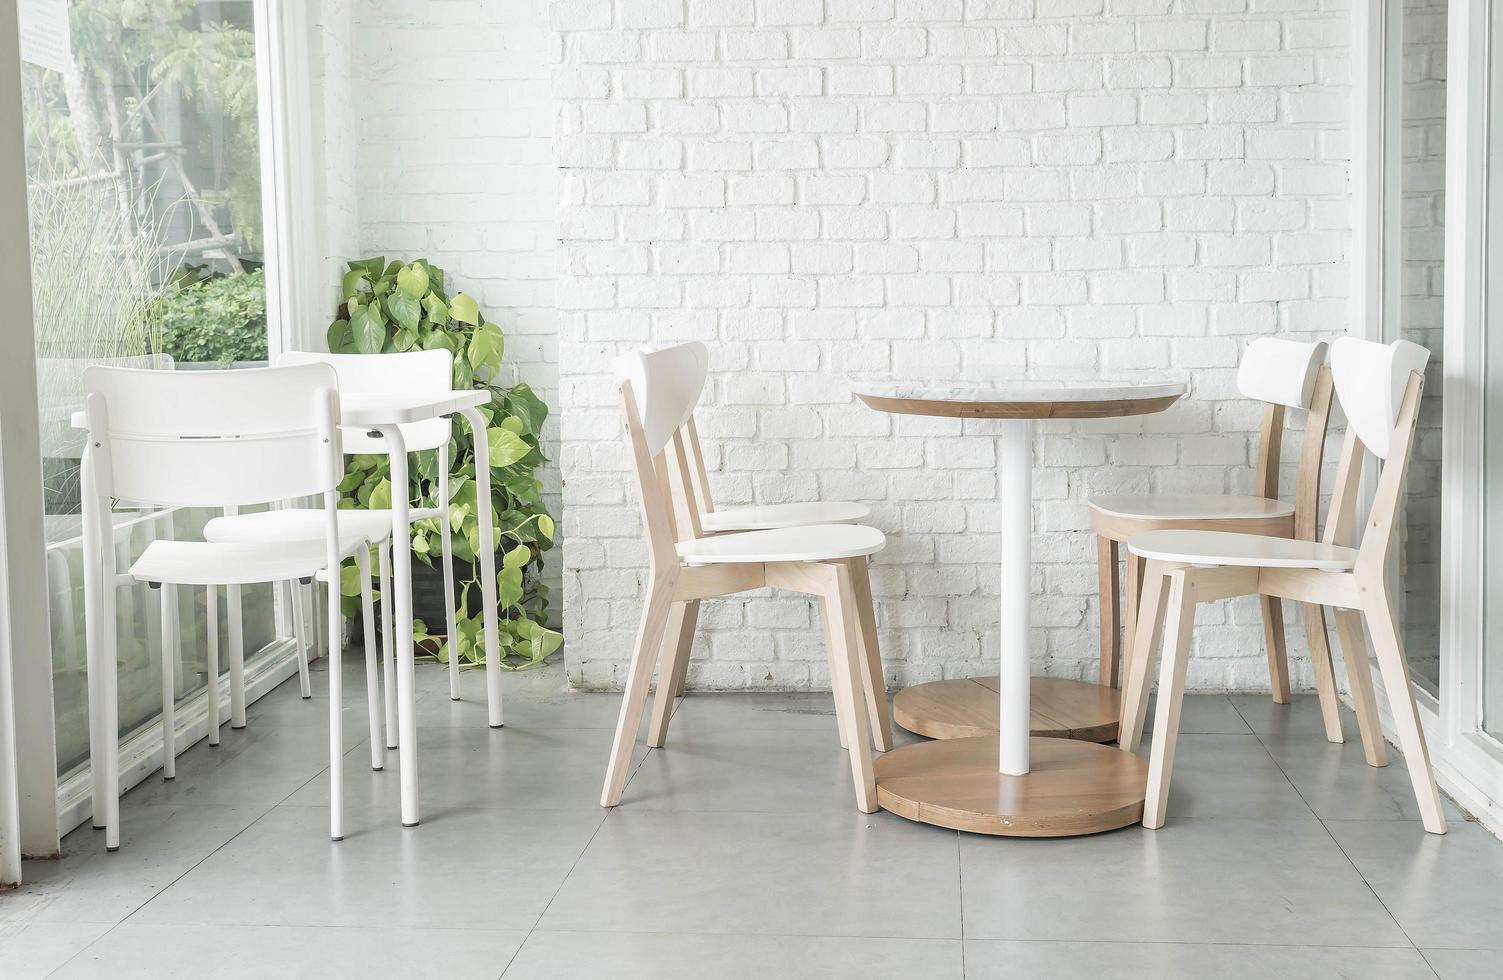 White chairs and tables photo